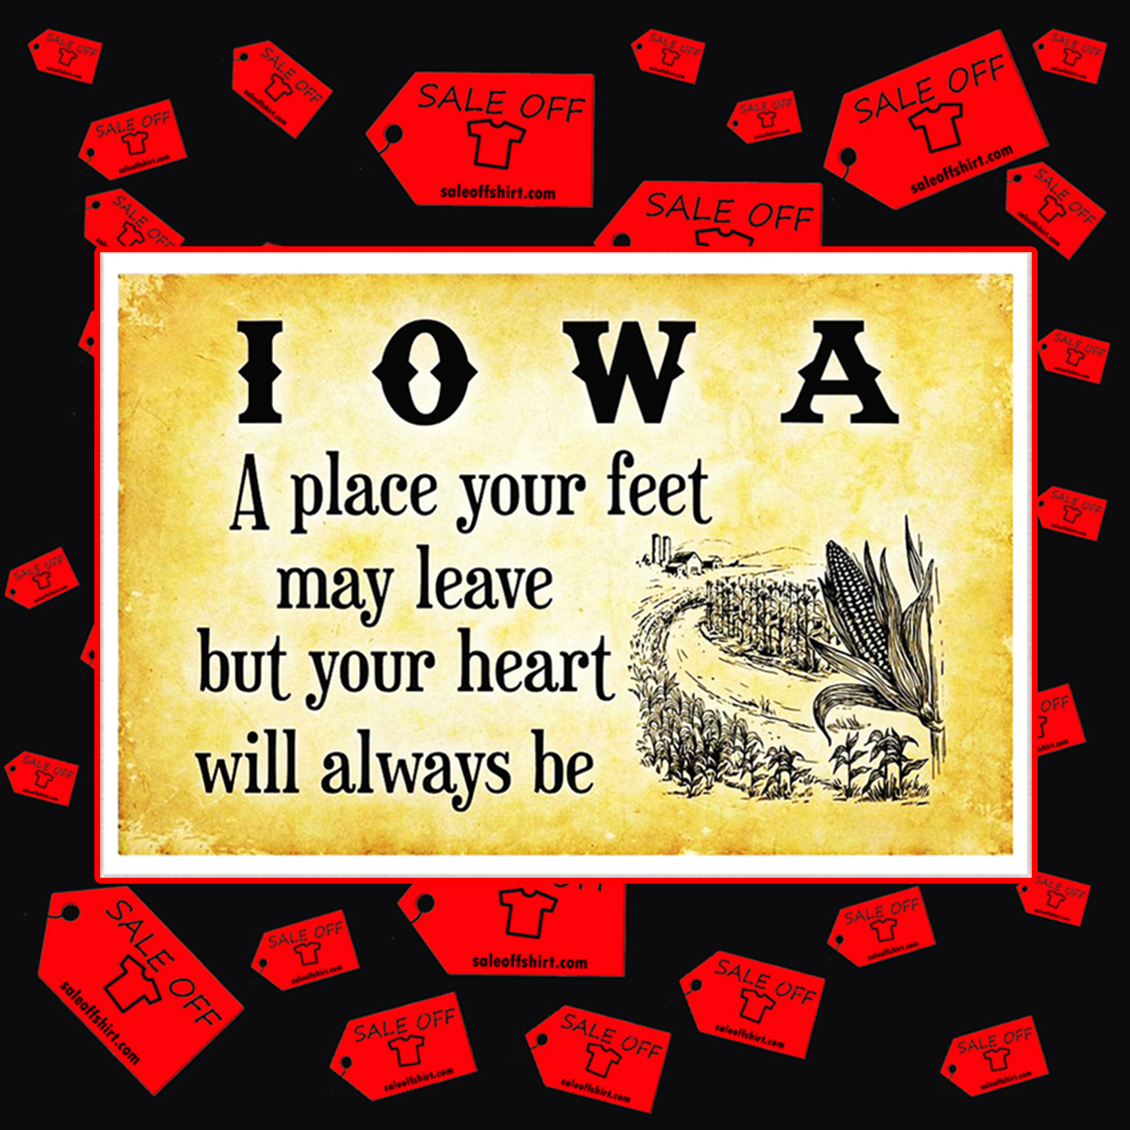 Iowa a place your feet may leave but your heart will always be poster 17x11